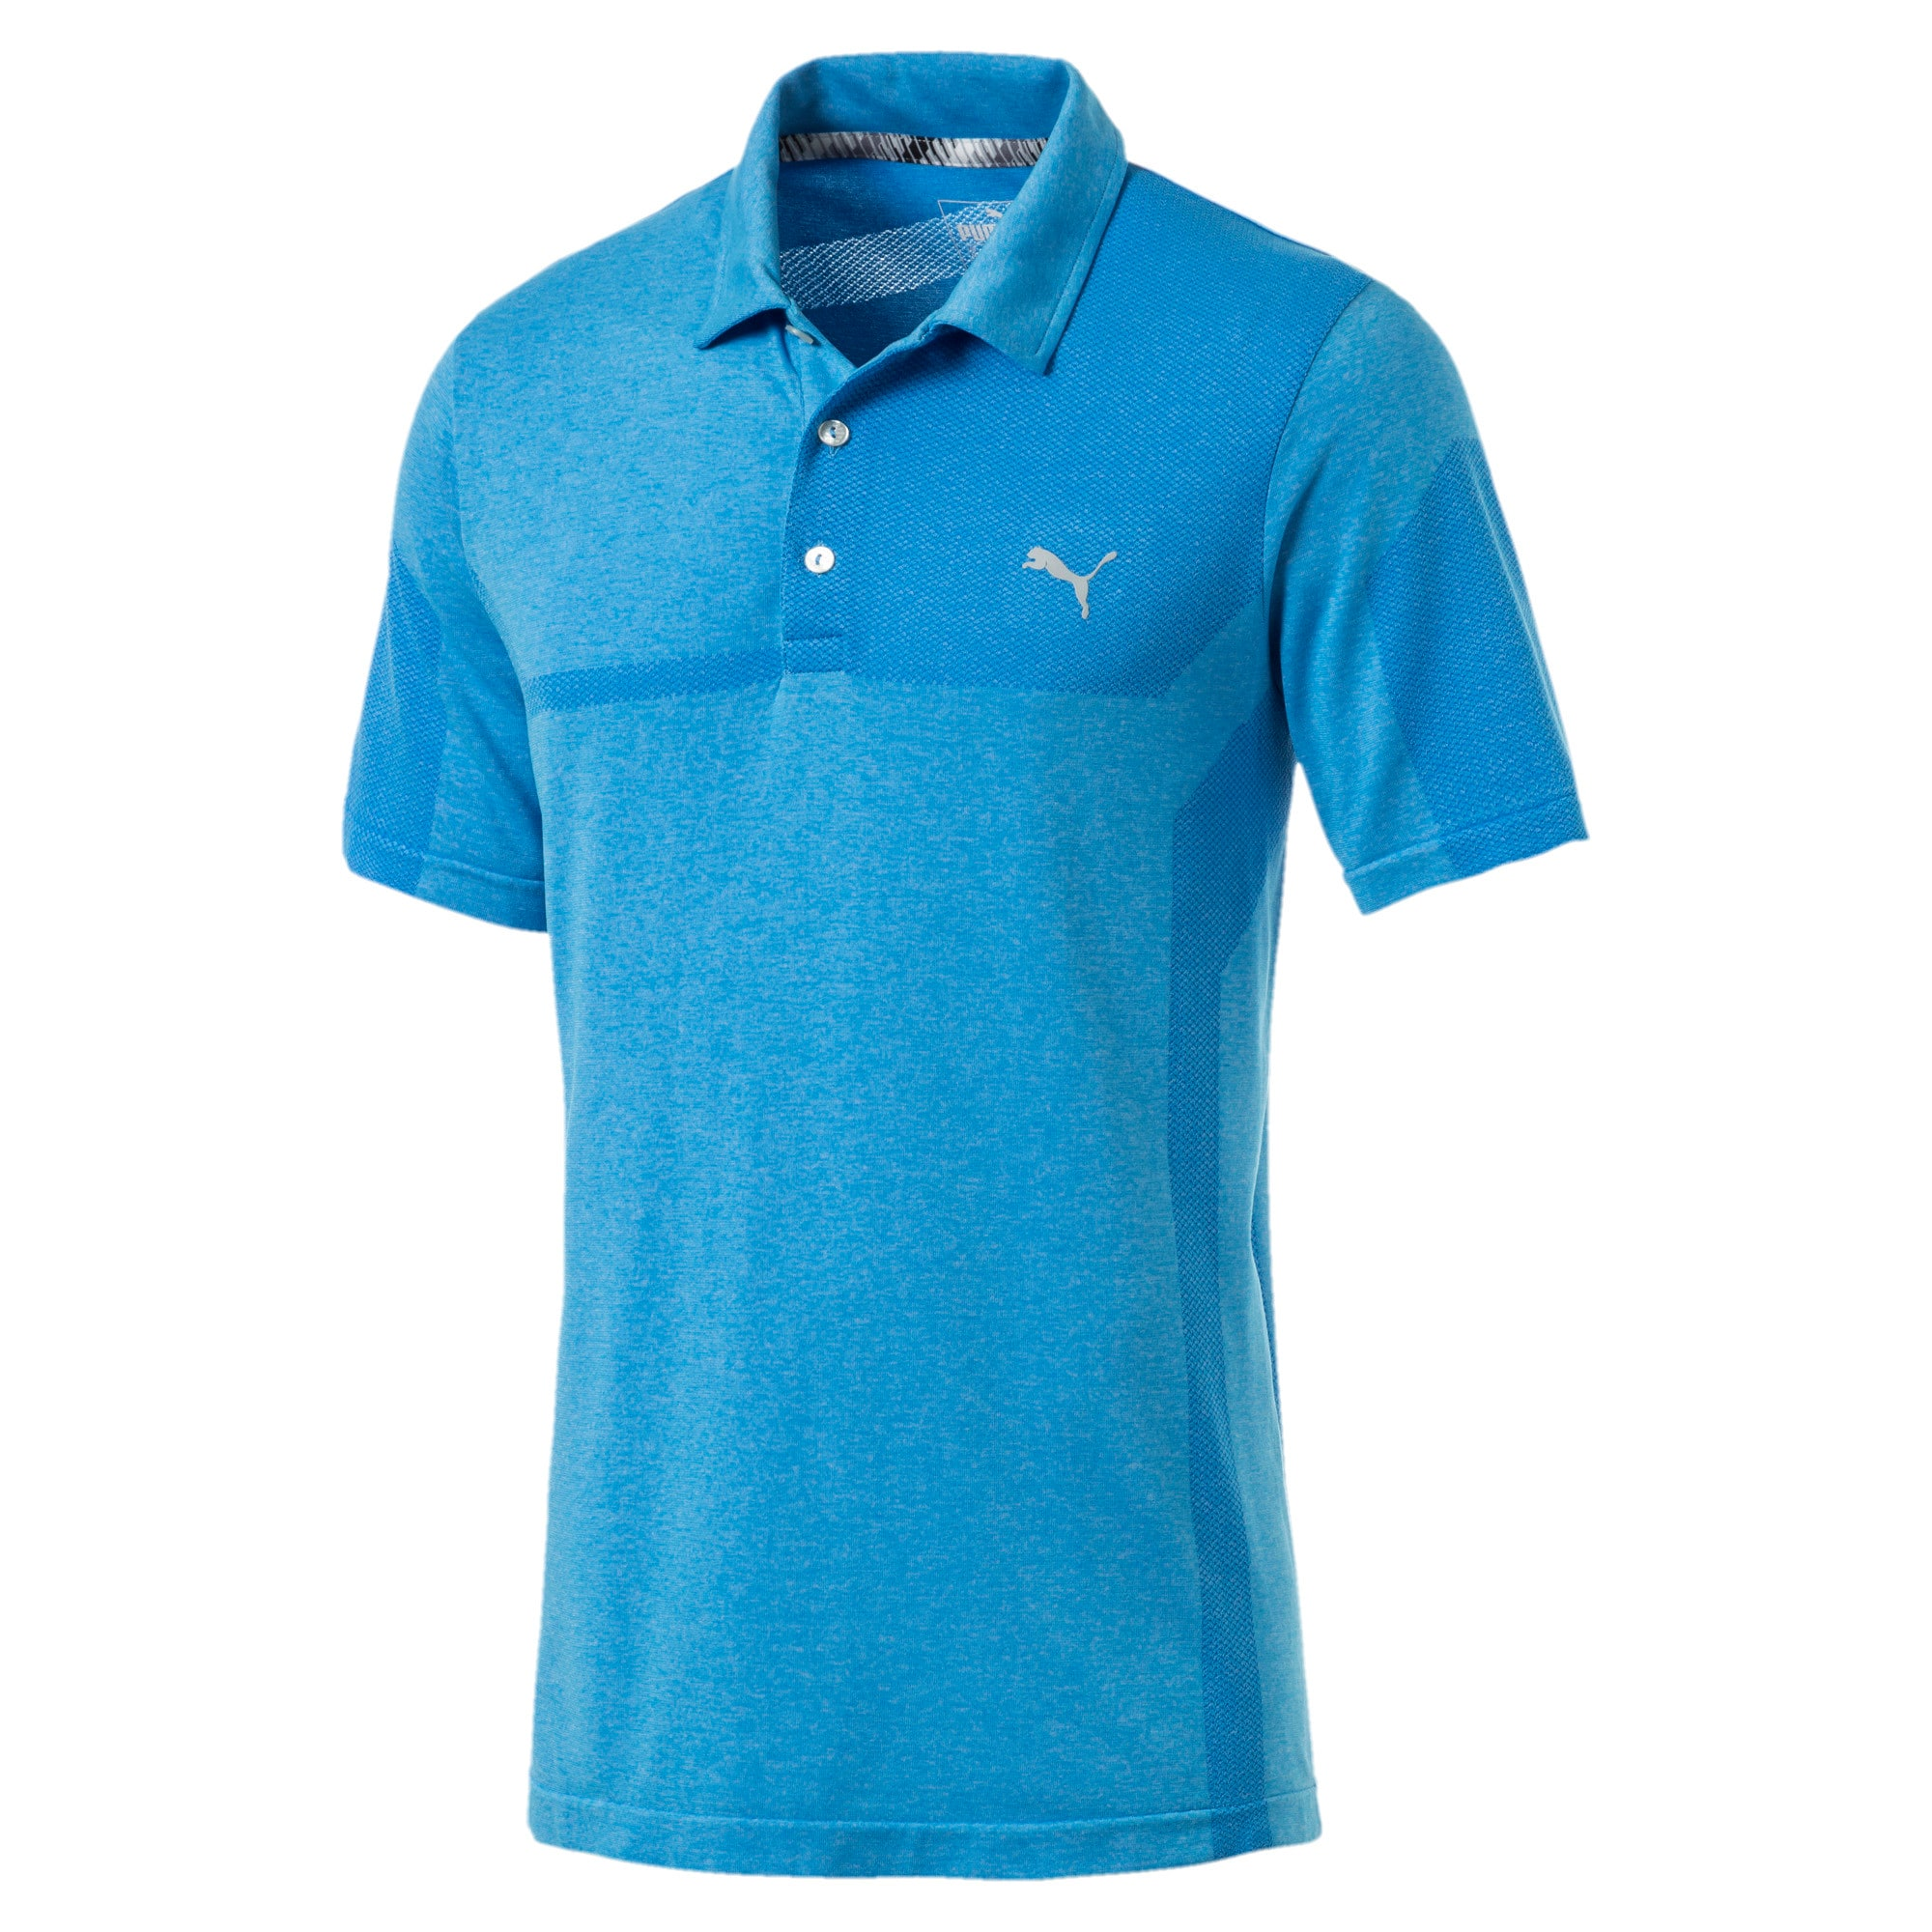 Thumbnail 4 of evoKNIT Breakers Herren Golf Polo, Bleu Azur Heather, medium